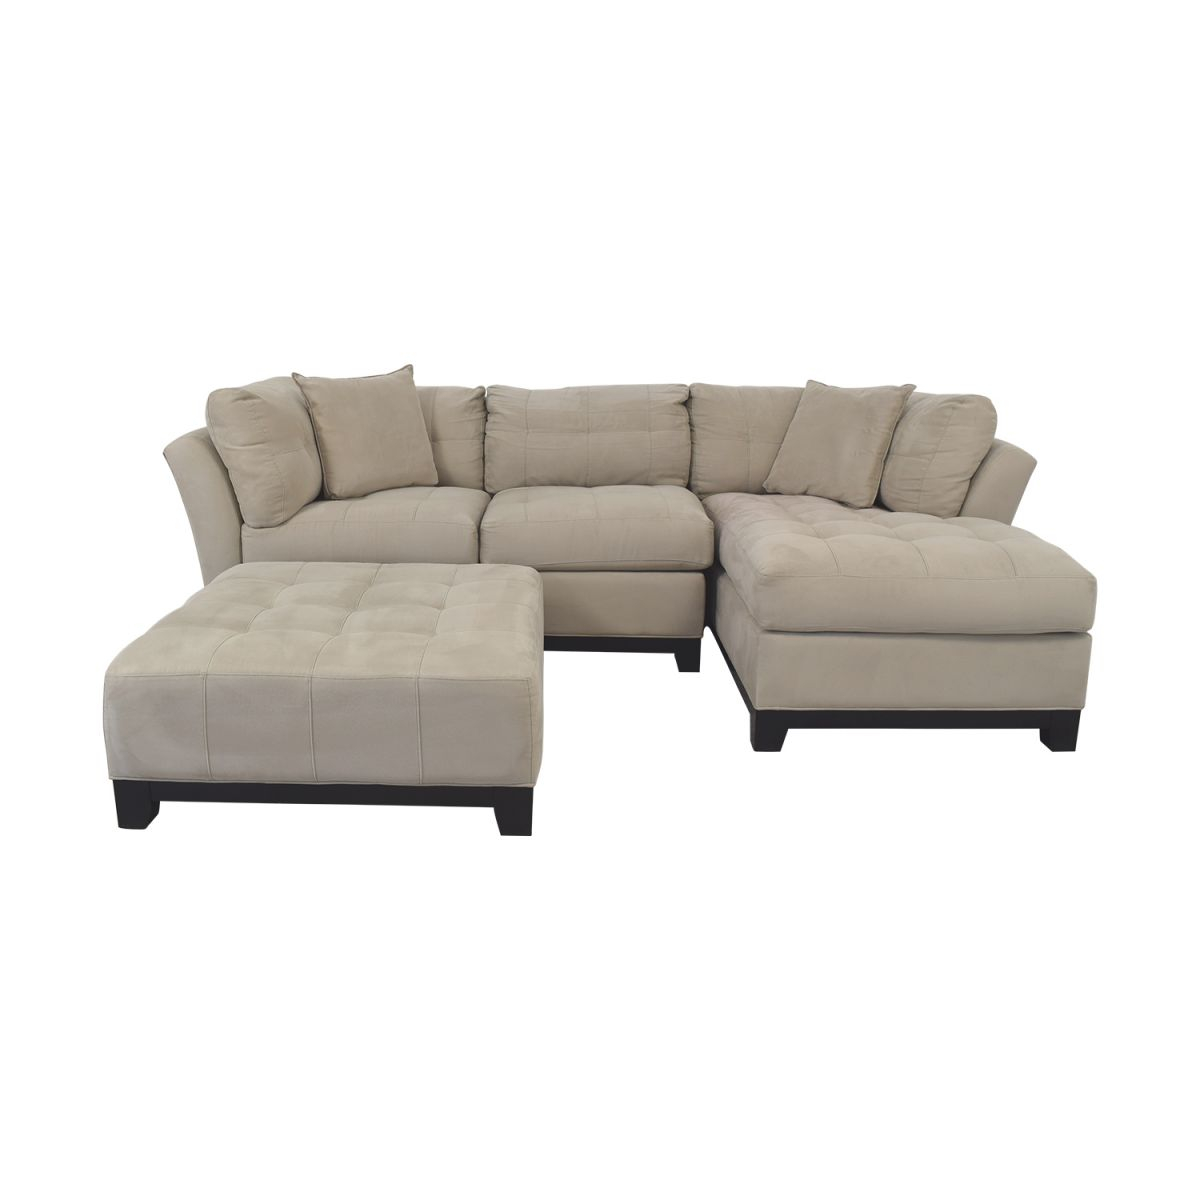 75% Off – Raymour & Flanigan Raymour & Flanigan Sectional Sofa With Chaise And Cocktail Ottoman / Sofas inside Lovely Raymour And Flanigan Sectional Sofas